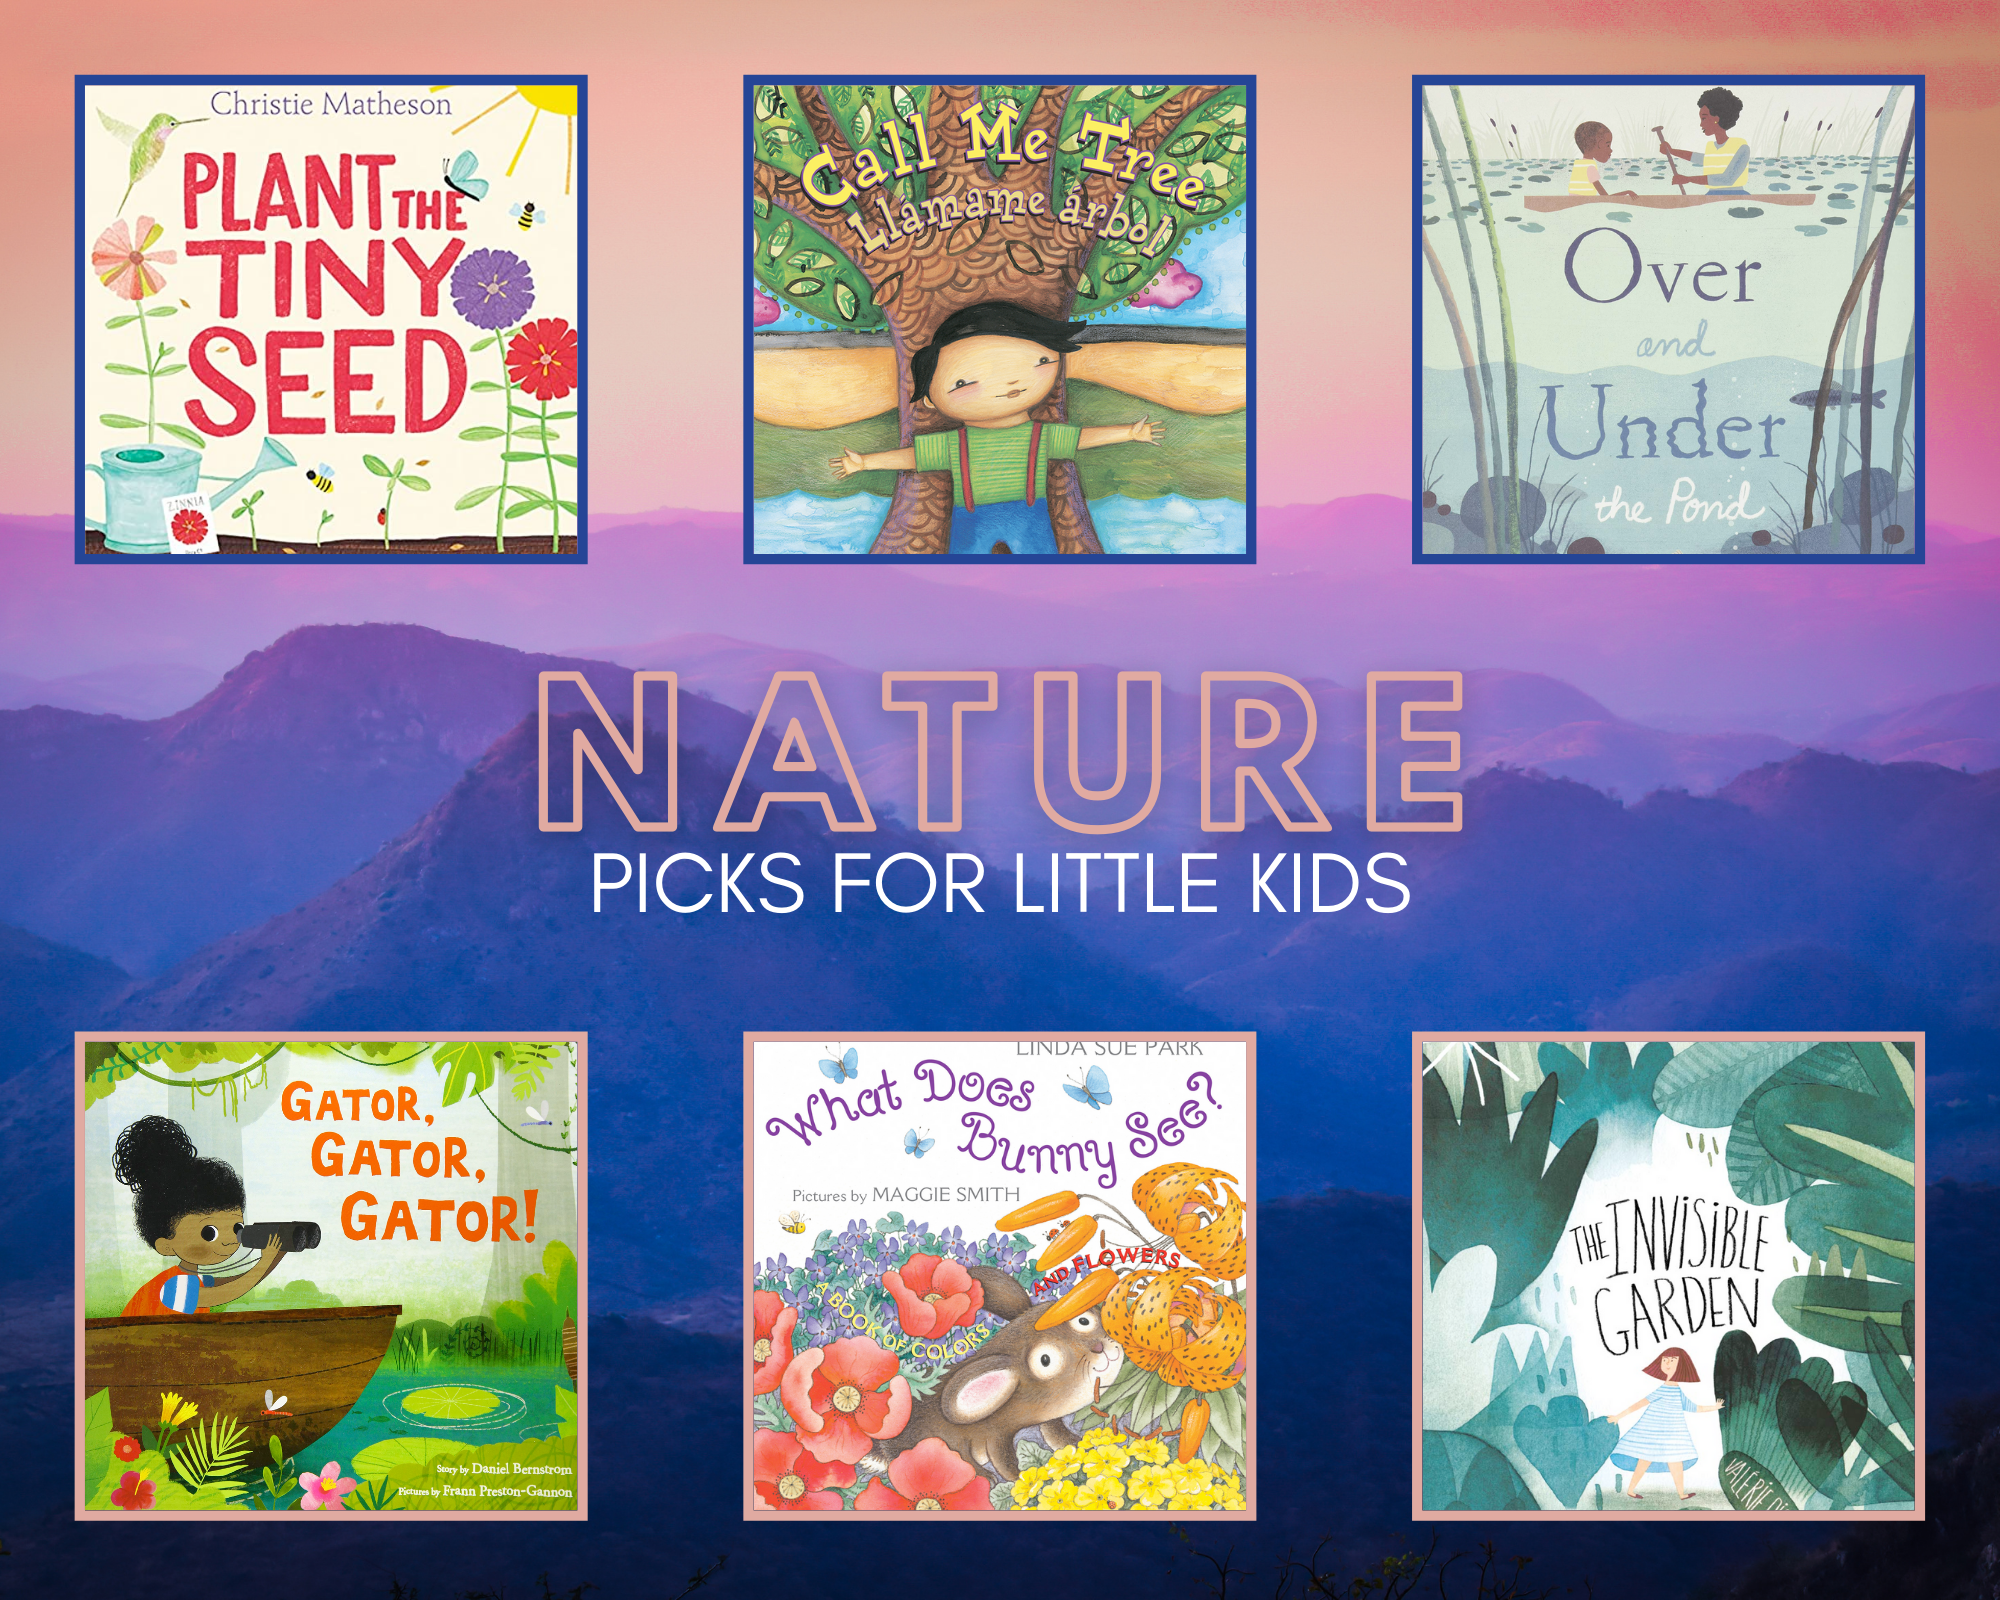 """A colorful collage of """"Nature PIcks for Little Kids"""" with purple mountains in the background. Titles include:  Plant the Tiny Seed by Christie Matheson whose cover features bright flowers and red type. Call Me Tree/Llámame árbol by Maya Christina Gonzalez, which shows a boy in a green shirt and blue pants standing with arms outstretched in front of a tree. Over and Under the Pond by Kate Messner and illustrated by Christopher Silas Neal shows a mother and child paddling along water and the rocks, reeds and fish under them. The Invisible Garden by Valérie Picard and Marianne Ferrer has lush greenery enclosing a small girl in a blue dress. What Does Bunny See? by Linda Sue Park and illustrated by Maggie Smith features a a small brown bunny in a colorful field. Gator, Gator, Gator! by Daniel Bernstrom and illustrated by Frann Preston-Gannon has clear crisp painting of a girl with binoculars in a boat in a bayou."""